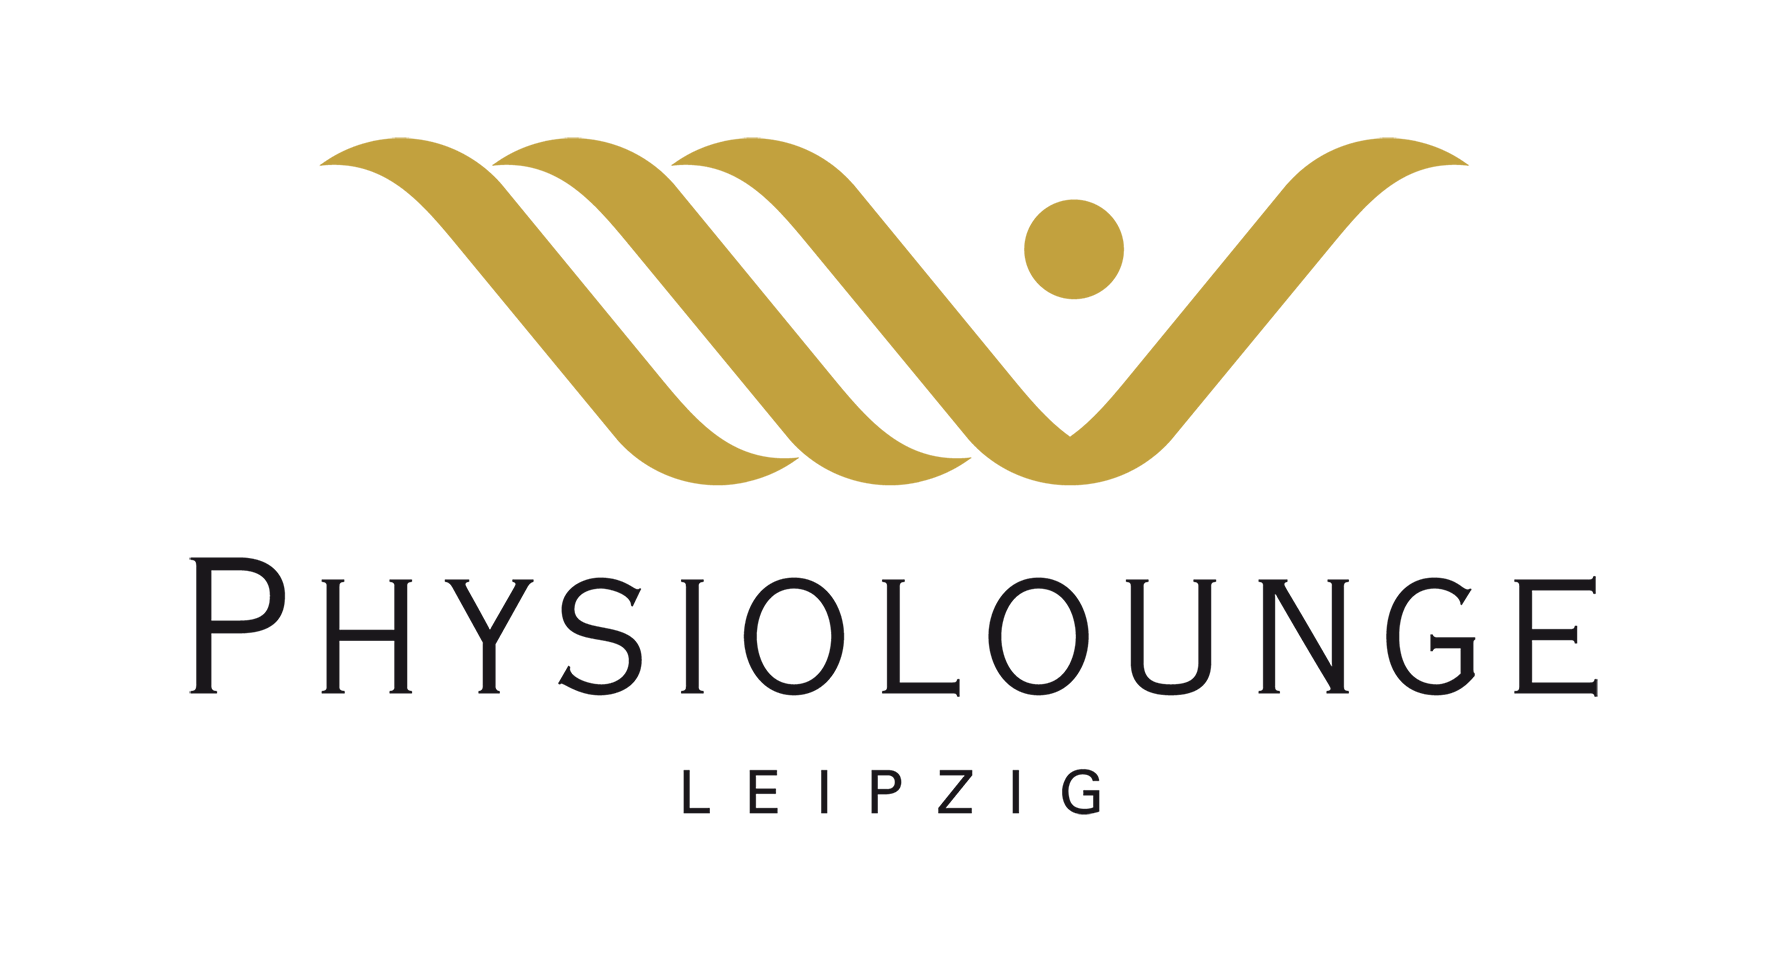 Physiolounge Leipzig